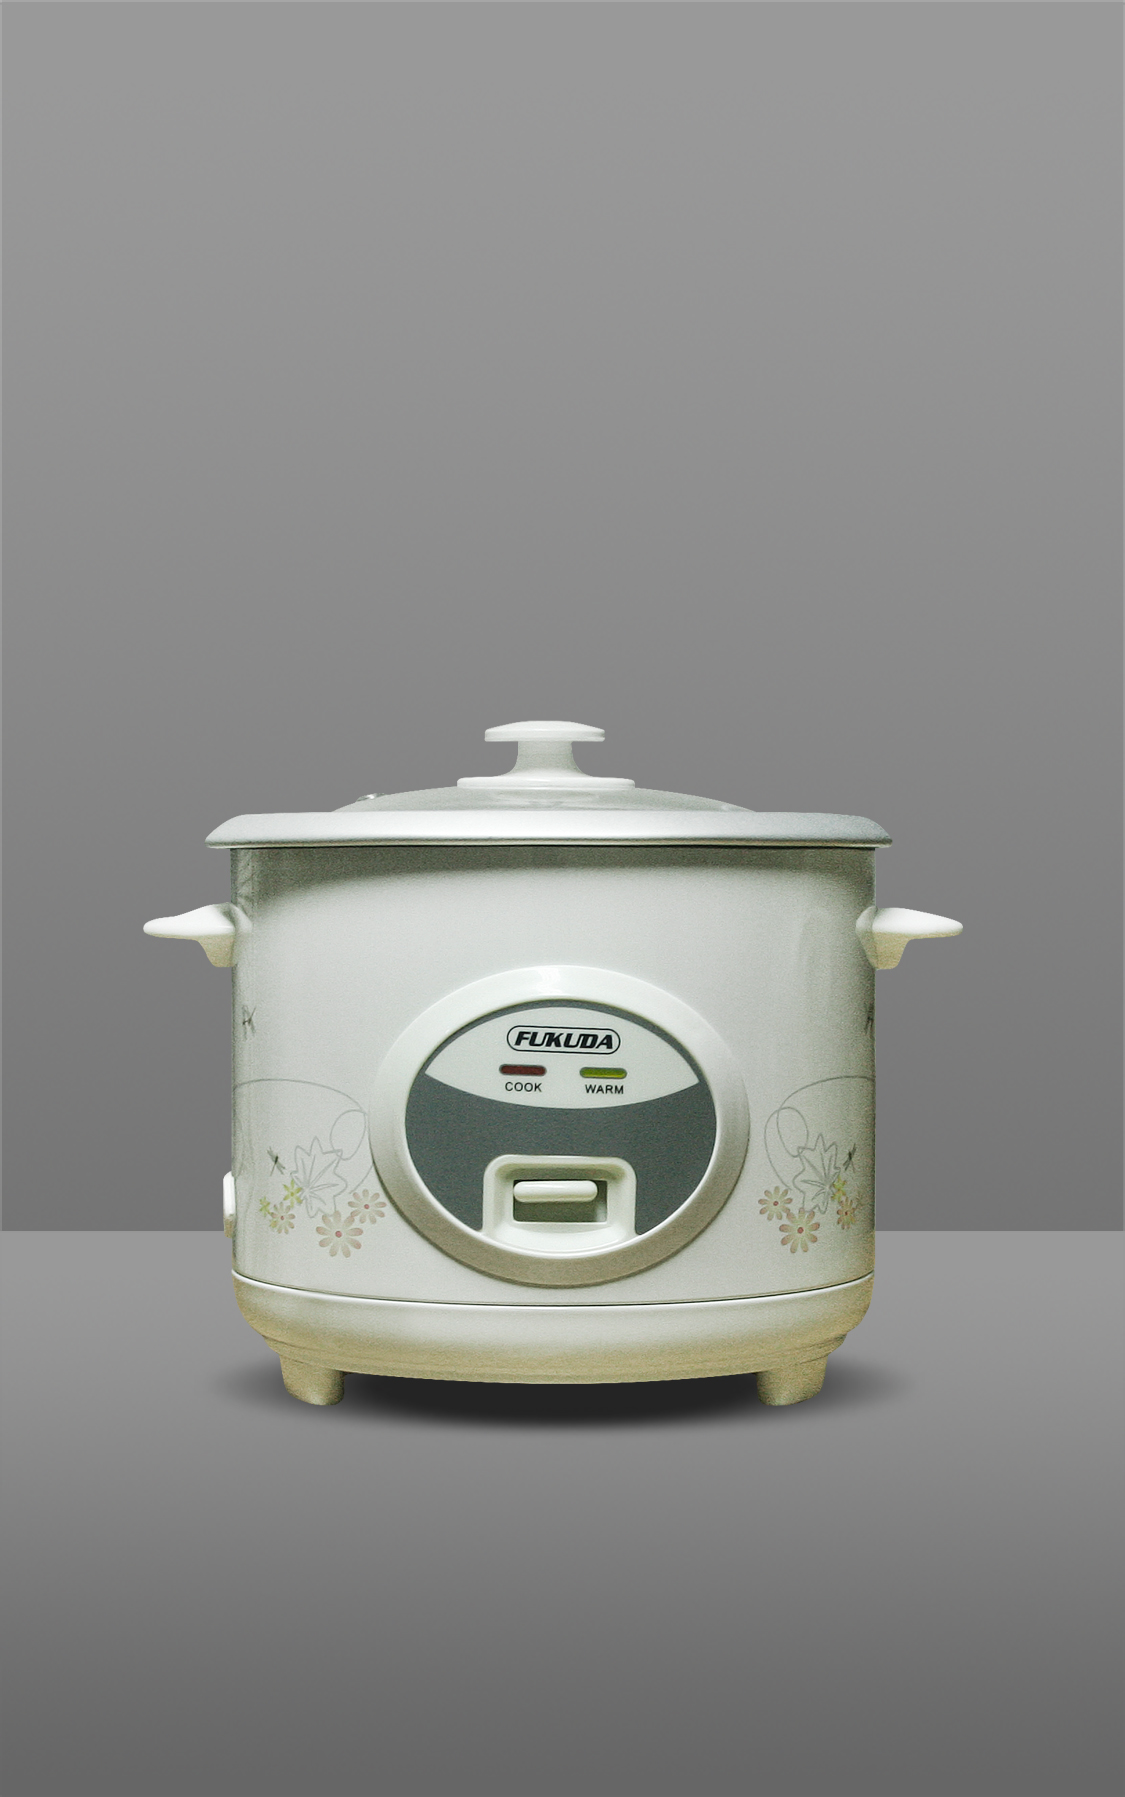 8 CUPS RICE COOKER & WARMER 1.5L